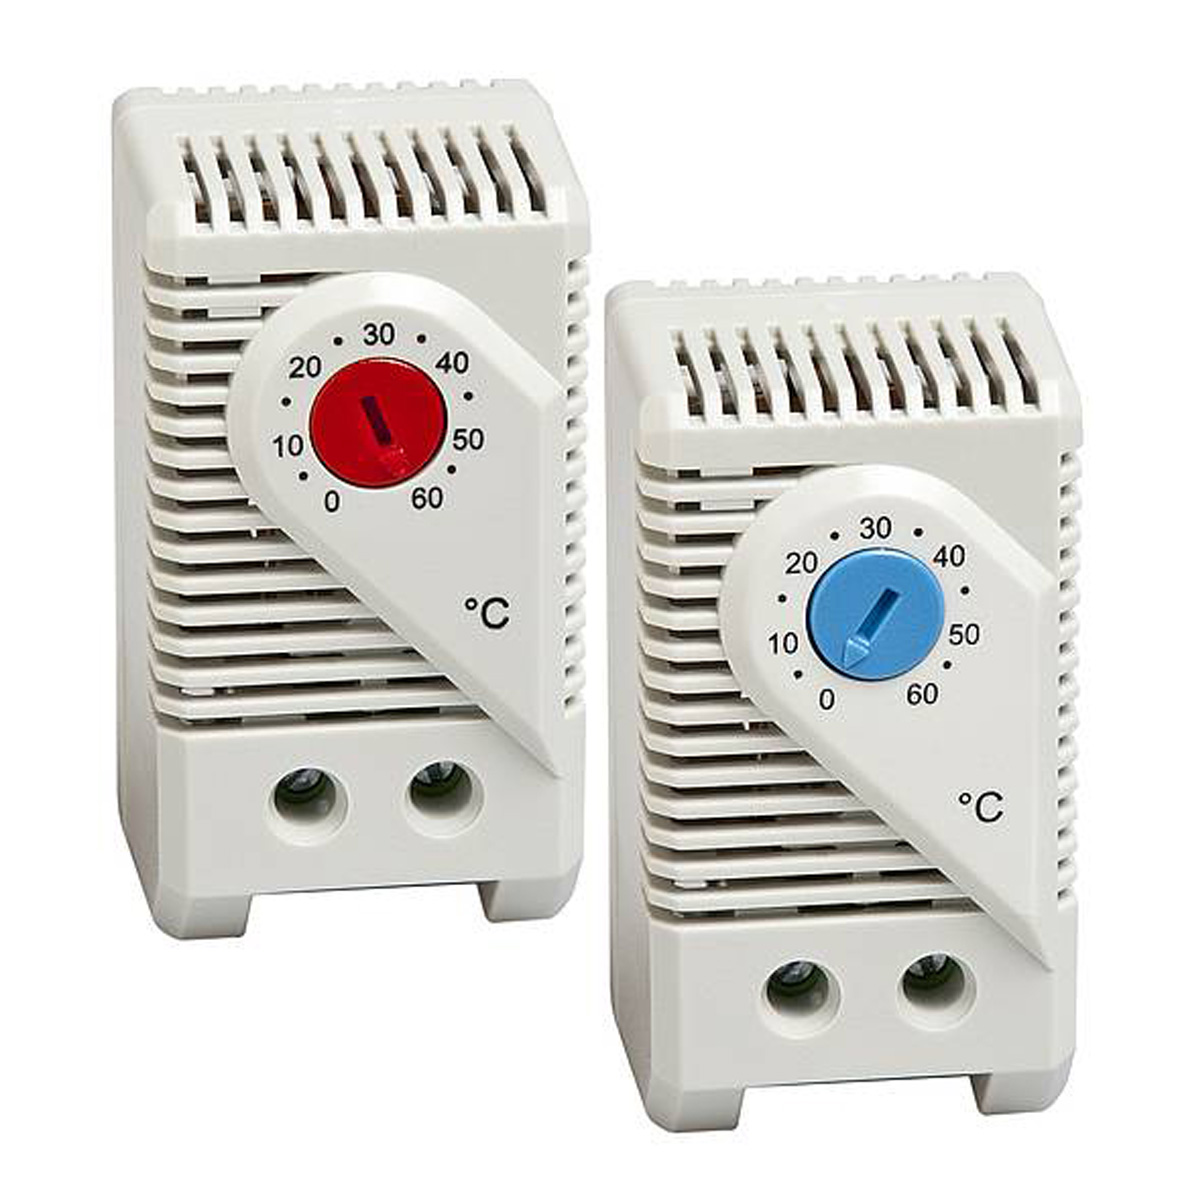 ekstern-termostat-for-varmeelement-250w